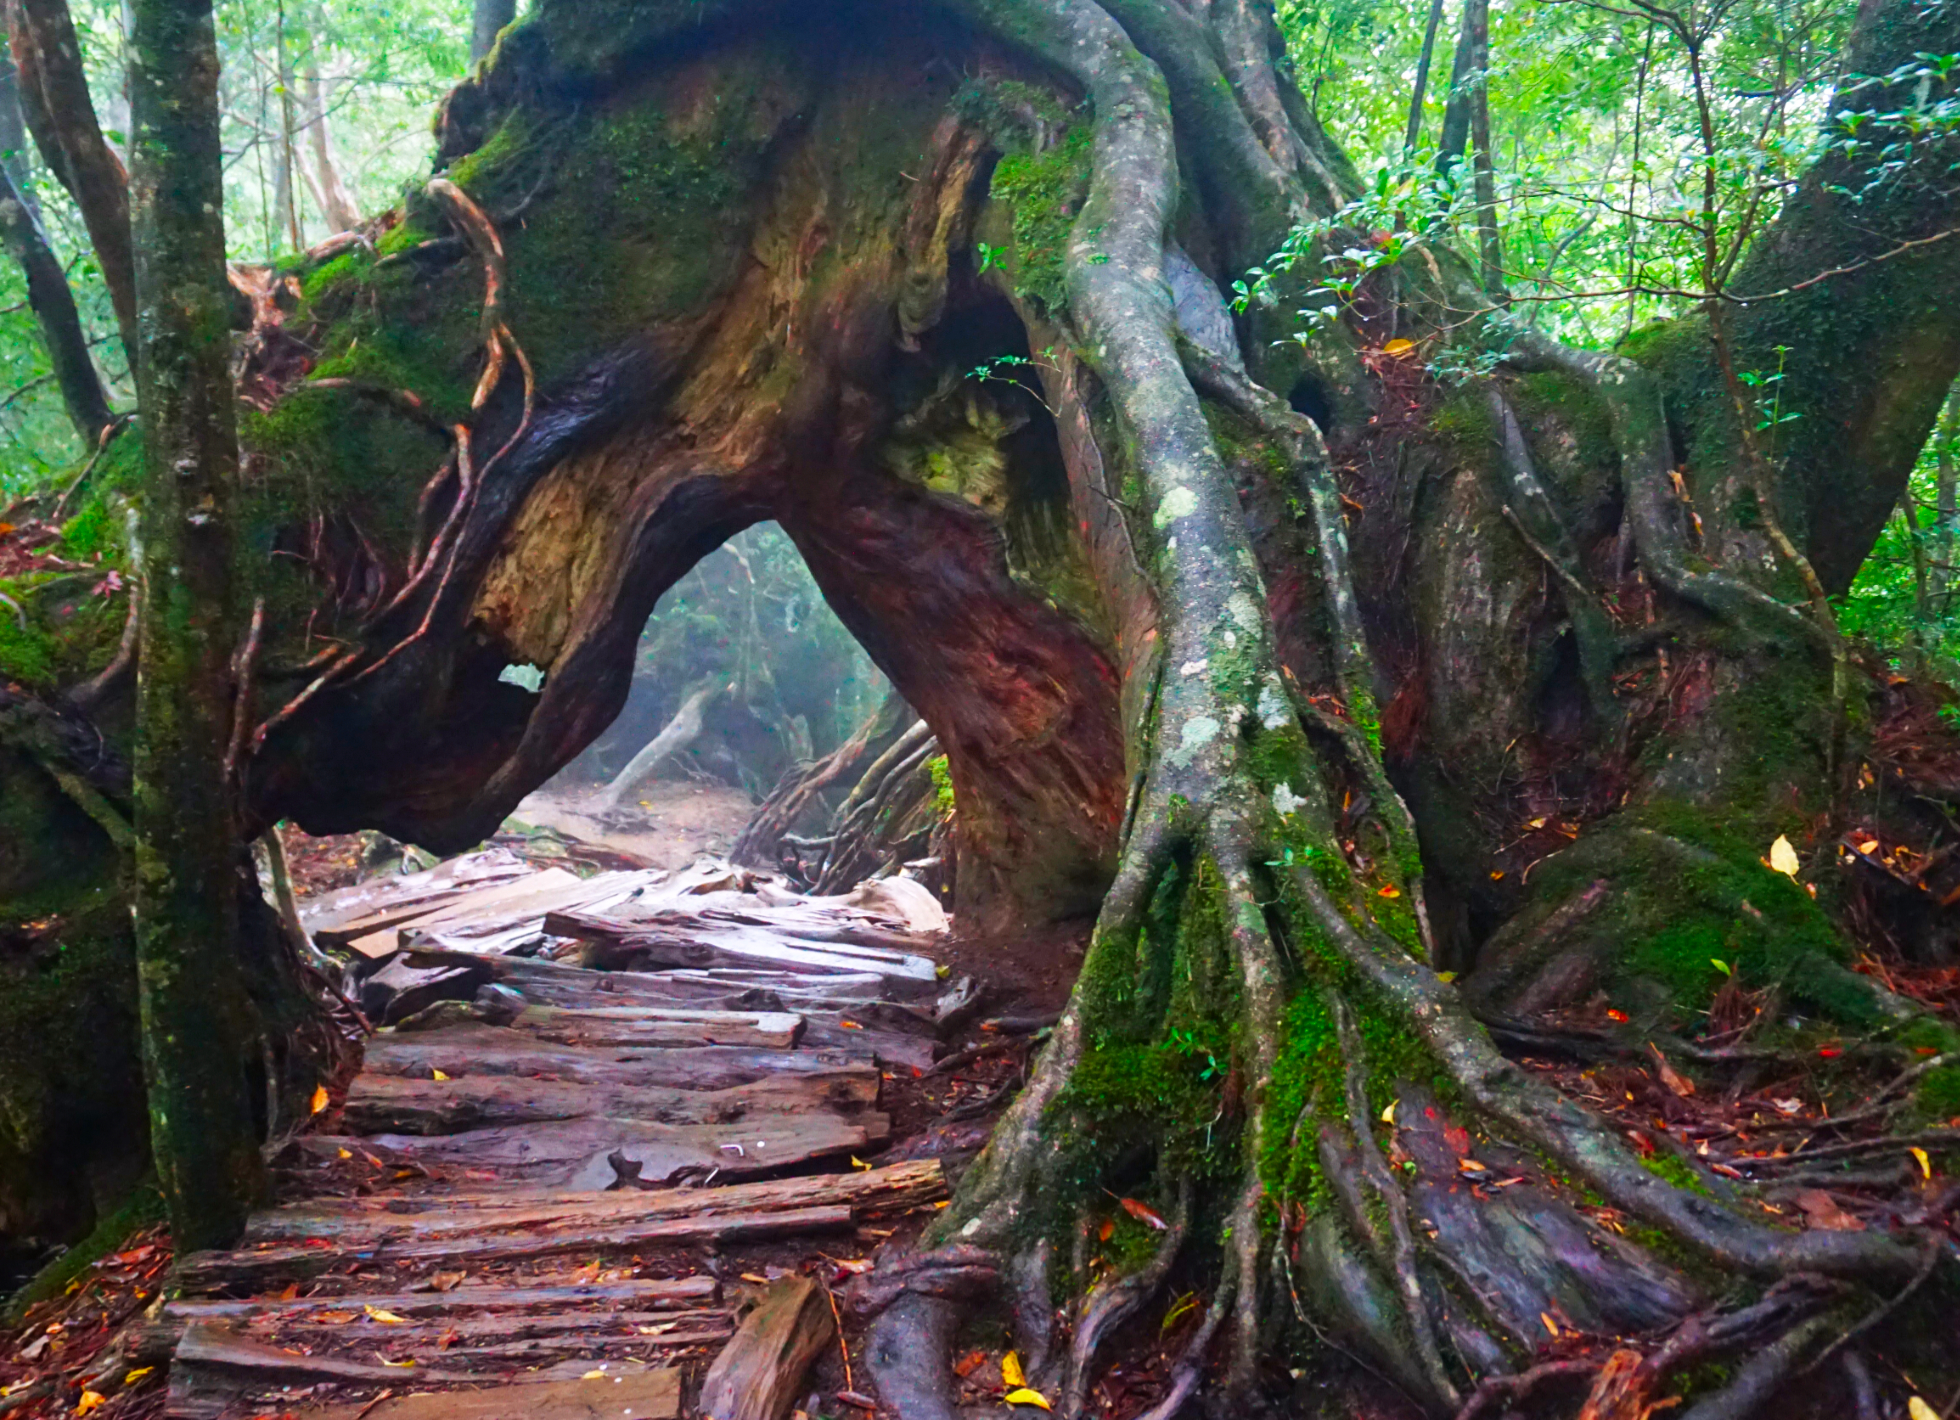 A rustic trail passing through the split trunk of a tree in a Japanese rain forest